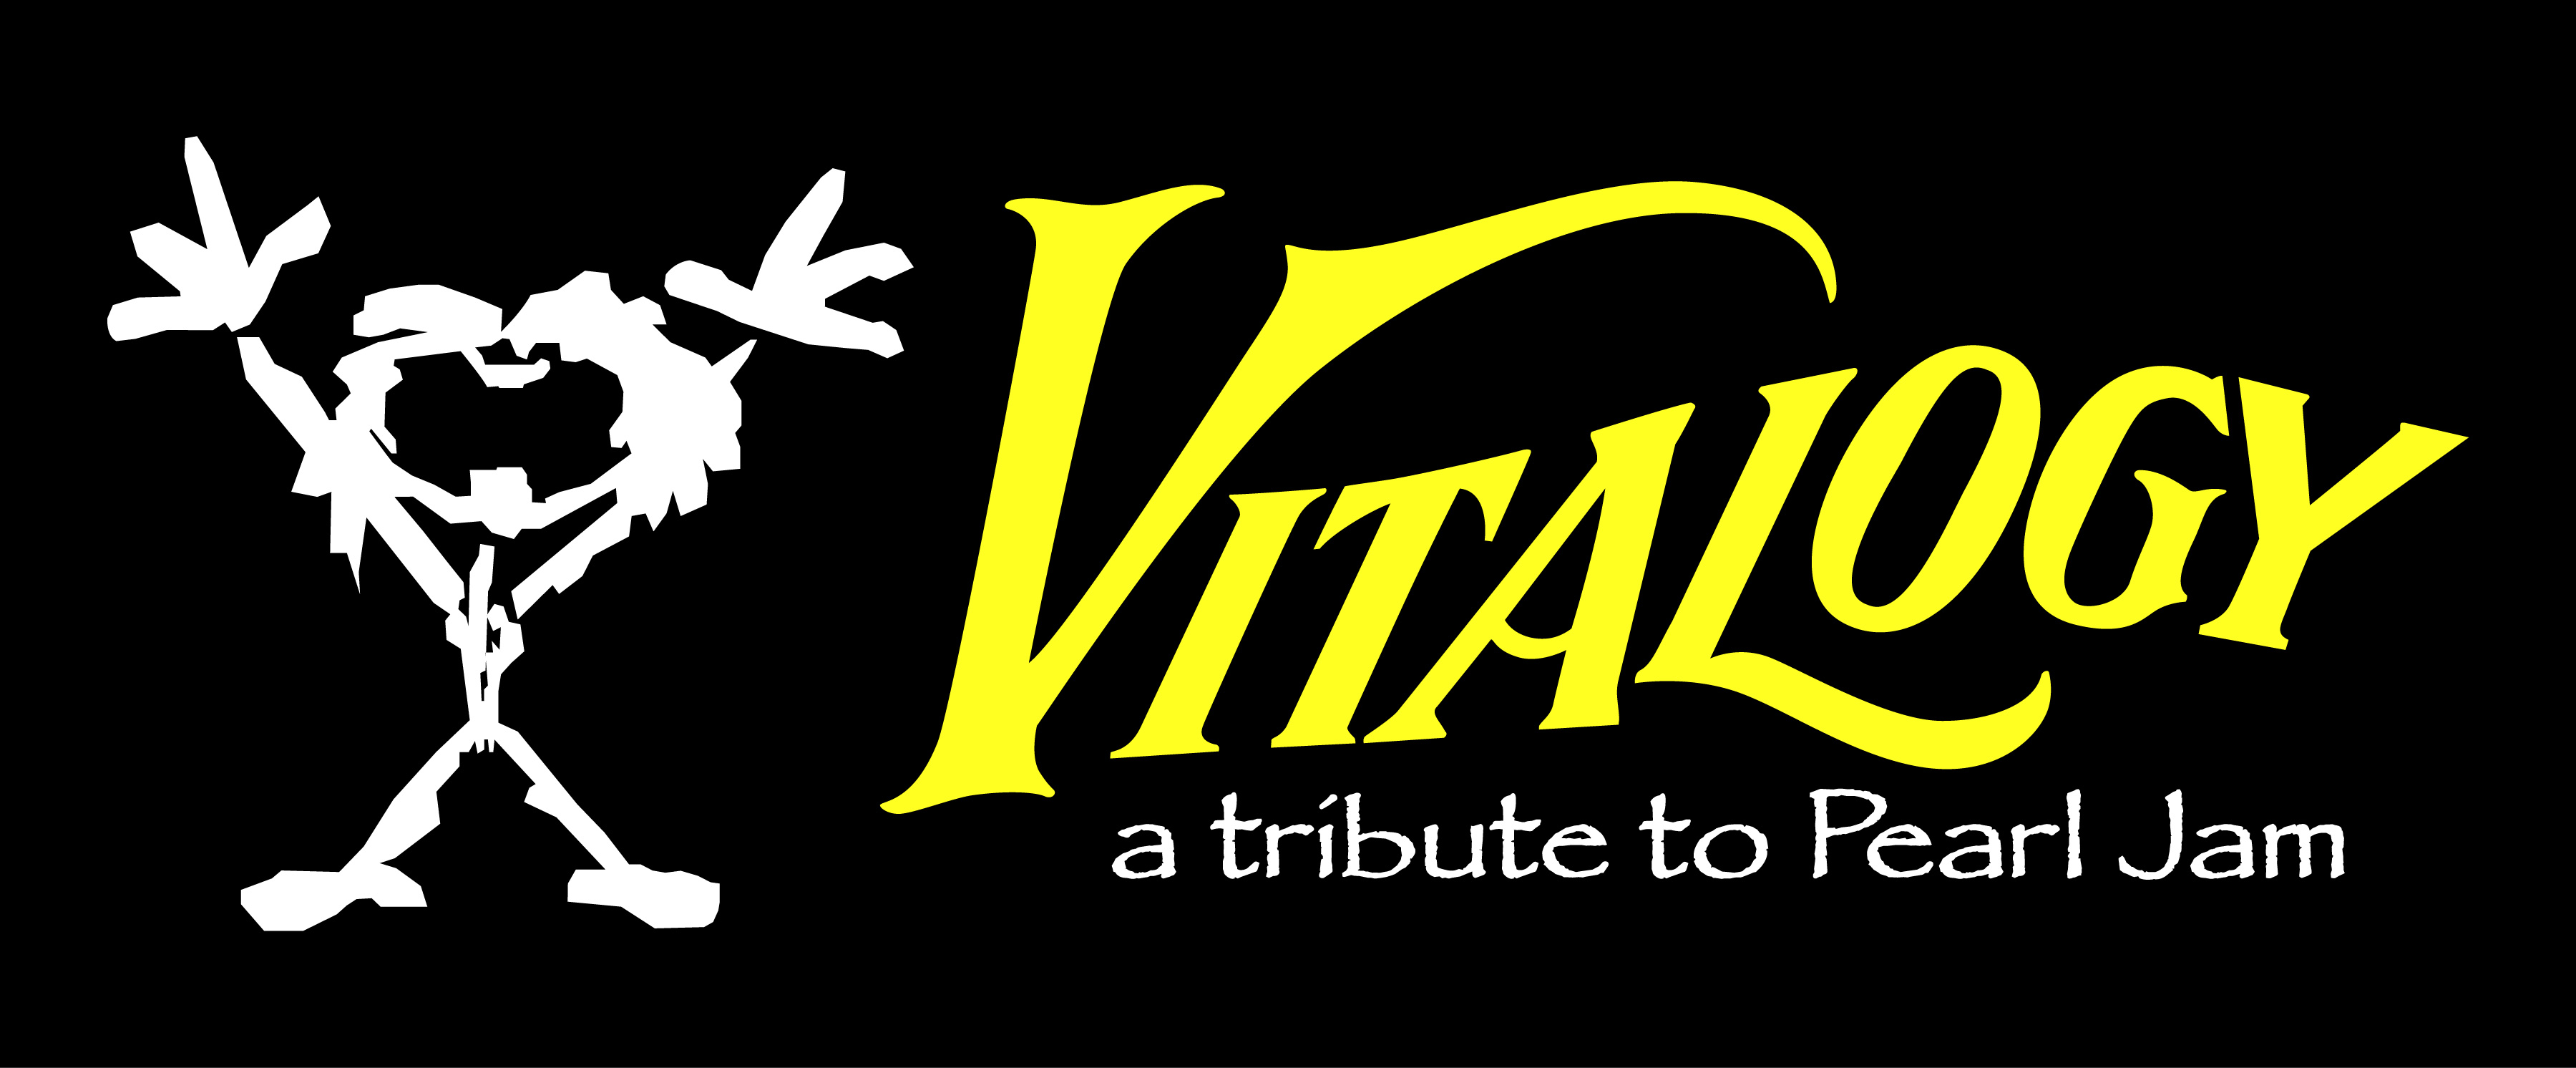 Vitalogy a Tribute to Pearl Jam